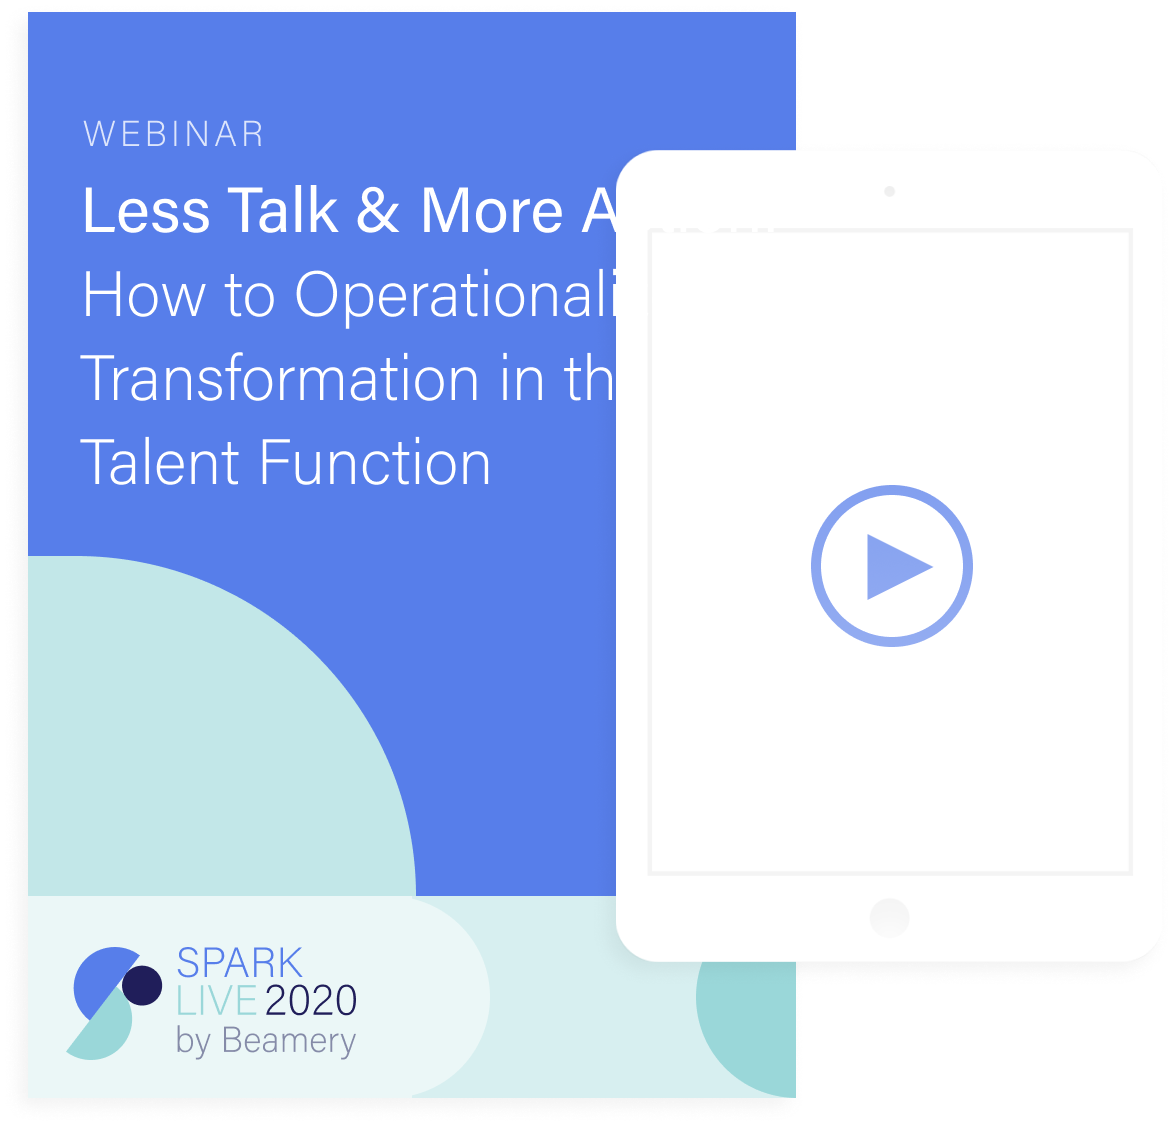 Less Talk & More Action: How to Operationalize Transformation in the Talent Function